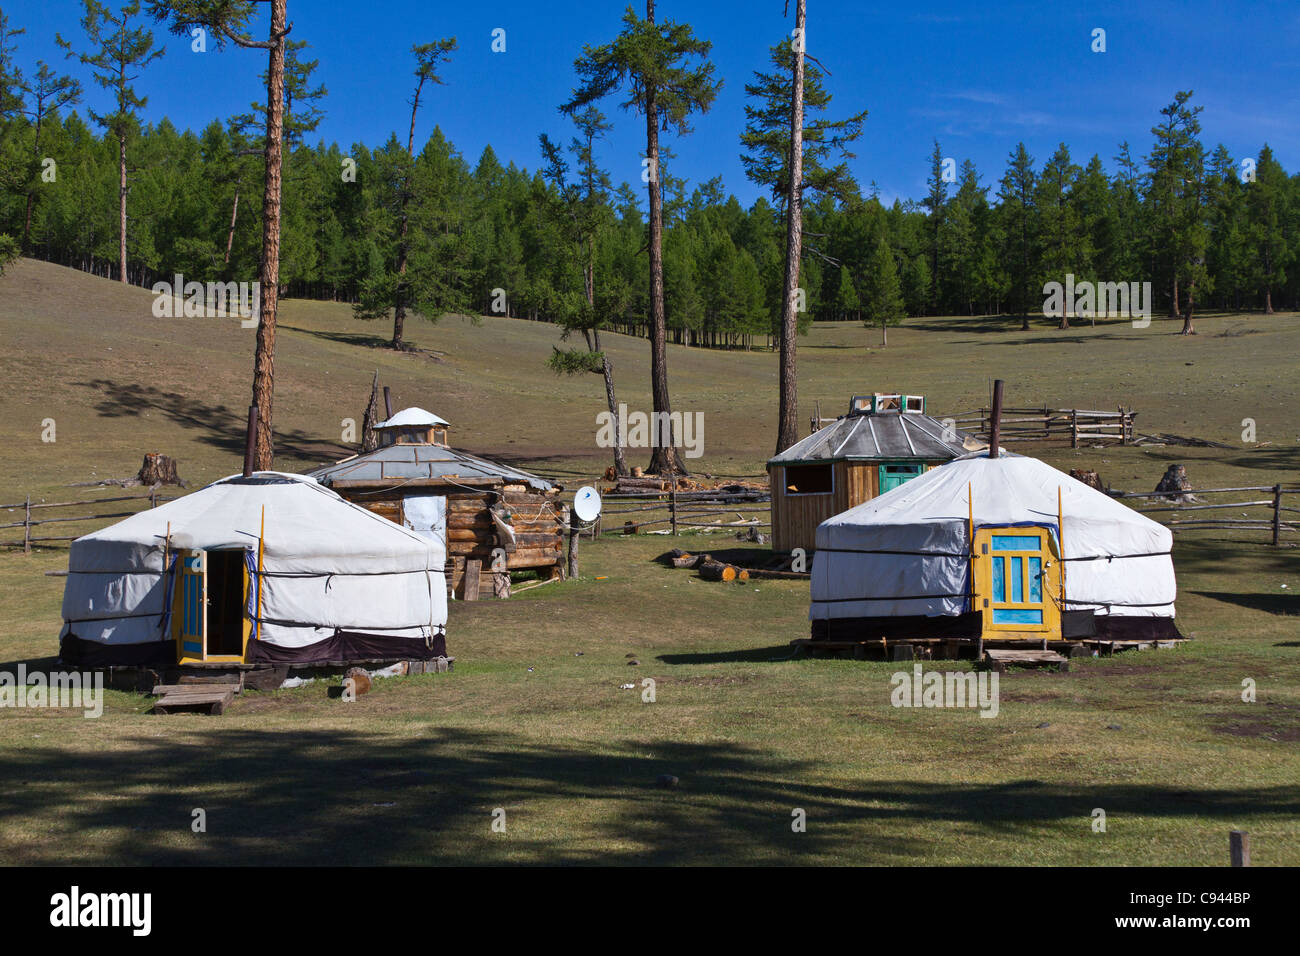 Gers or yurts in the forest of northern Mongolia for the reindeer herders. - Stock Image